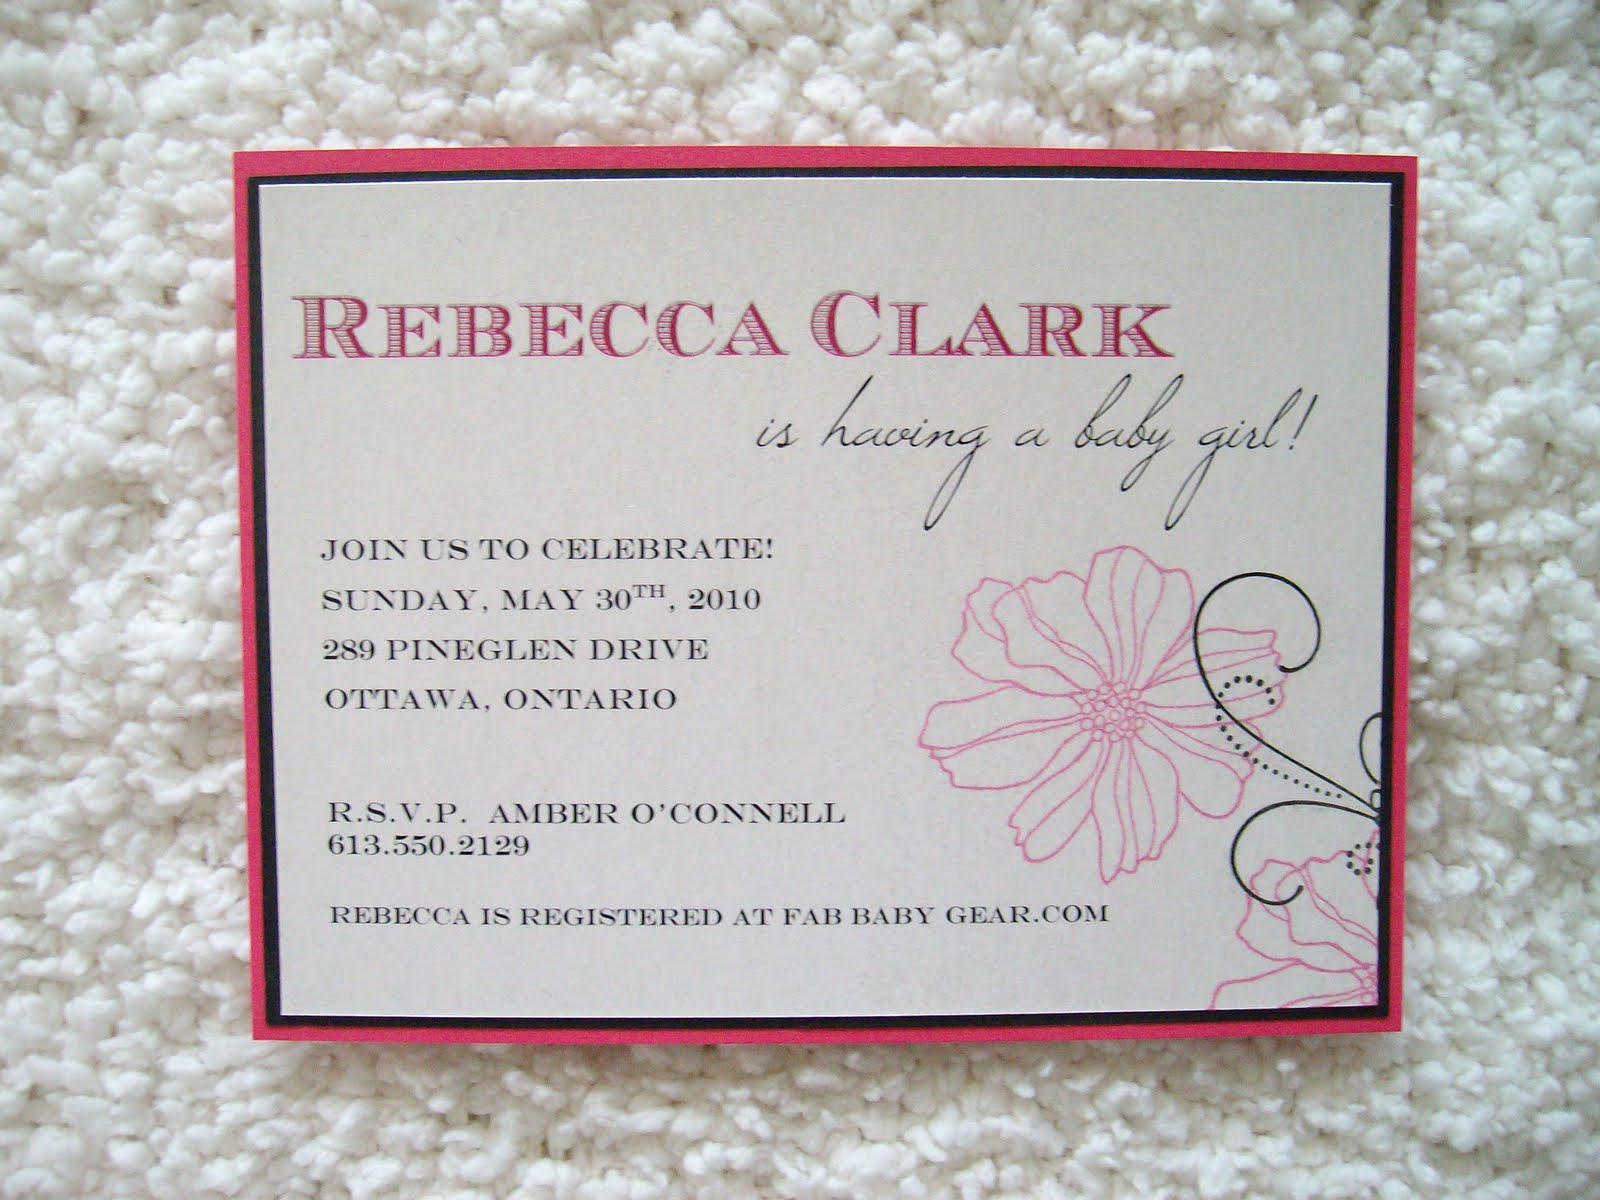 Jewish Wedding Invitation Wording Lovely Different Wedding Invitations Blog orthodox Jewish